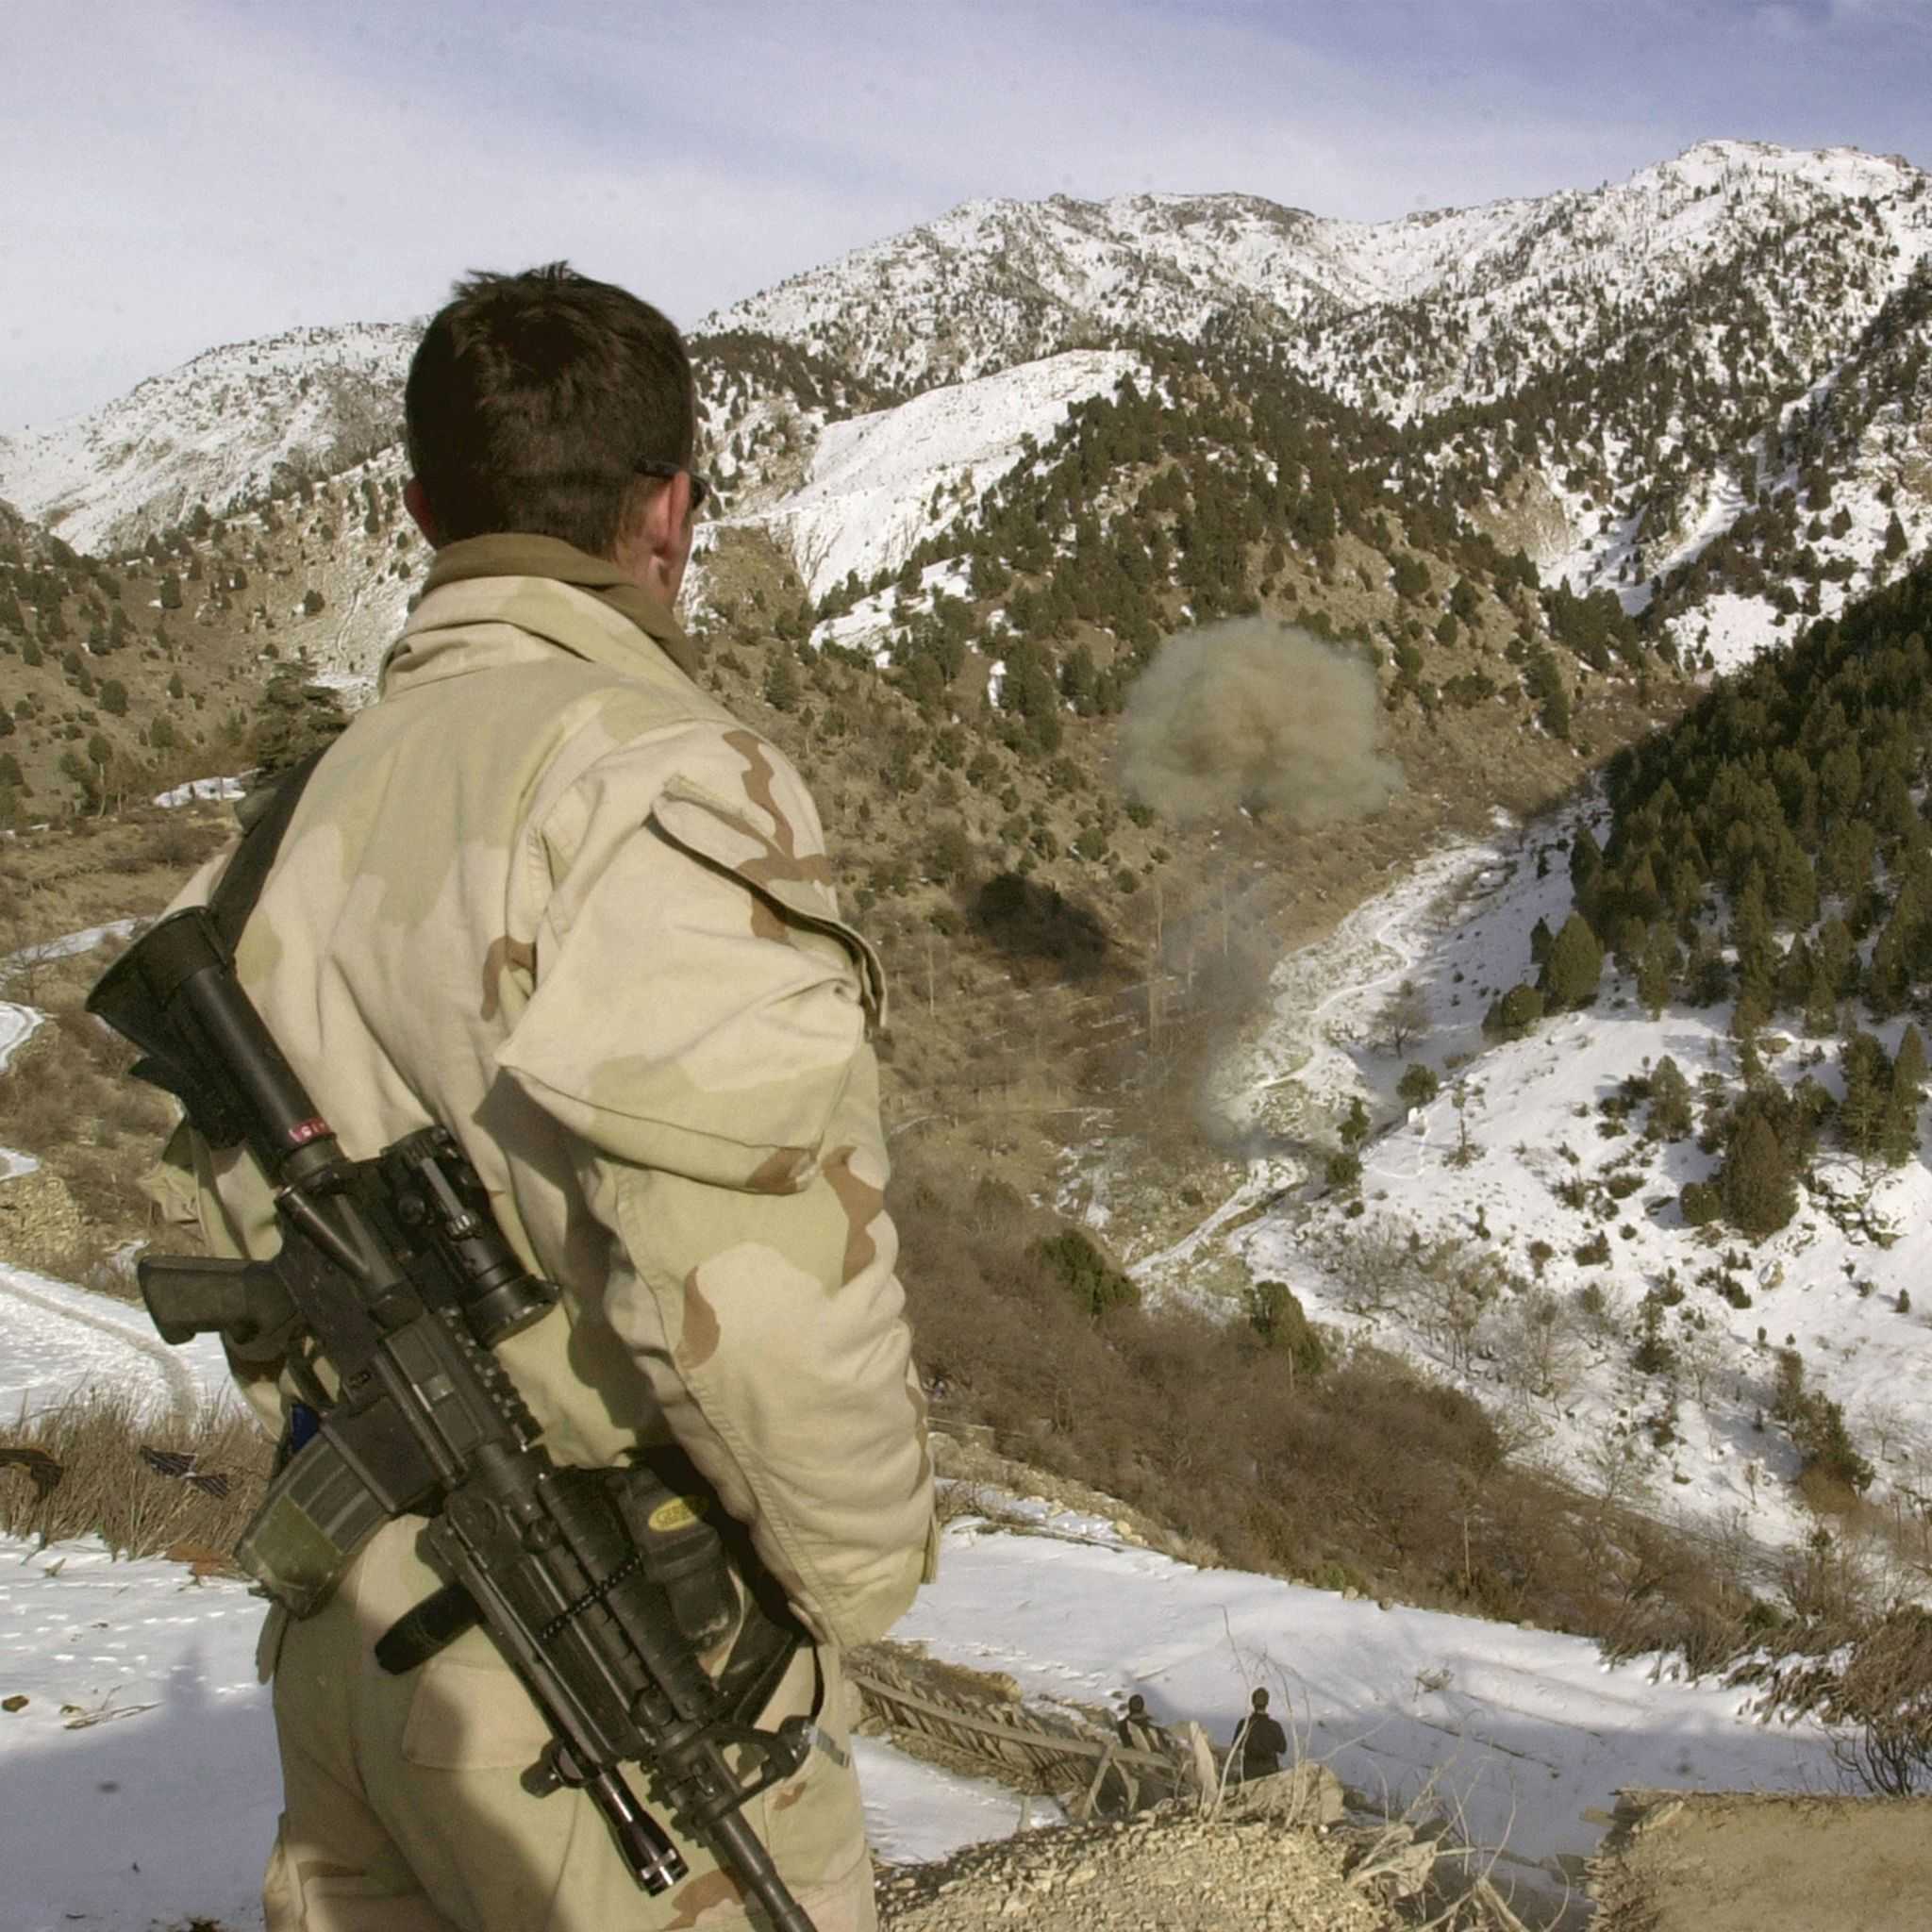 Where did operation red wings take place